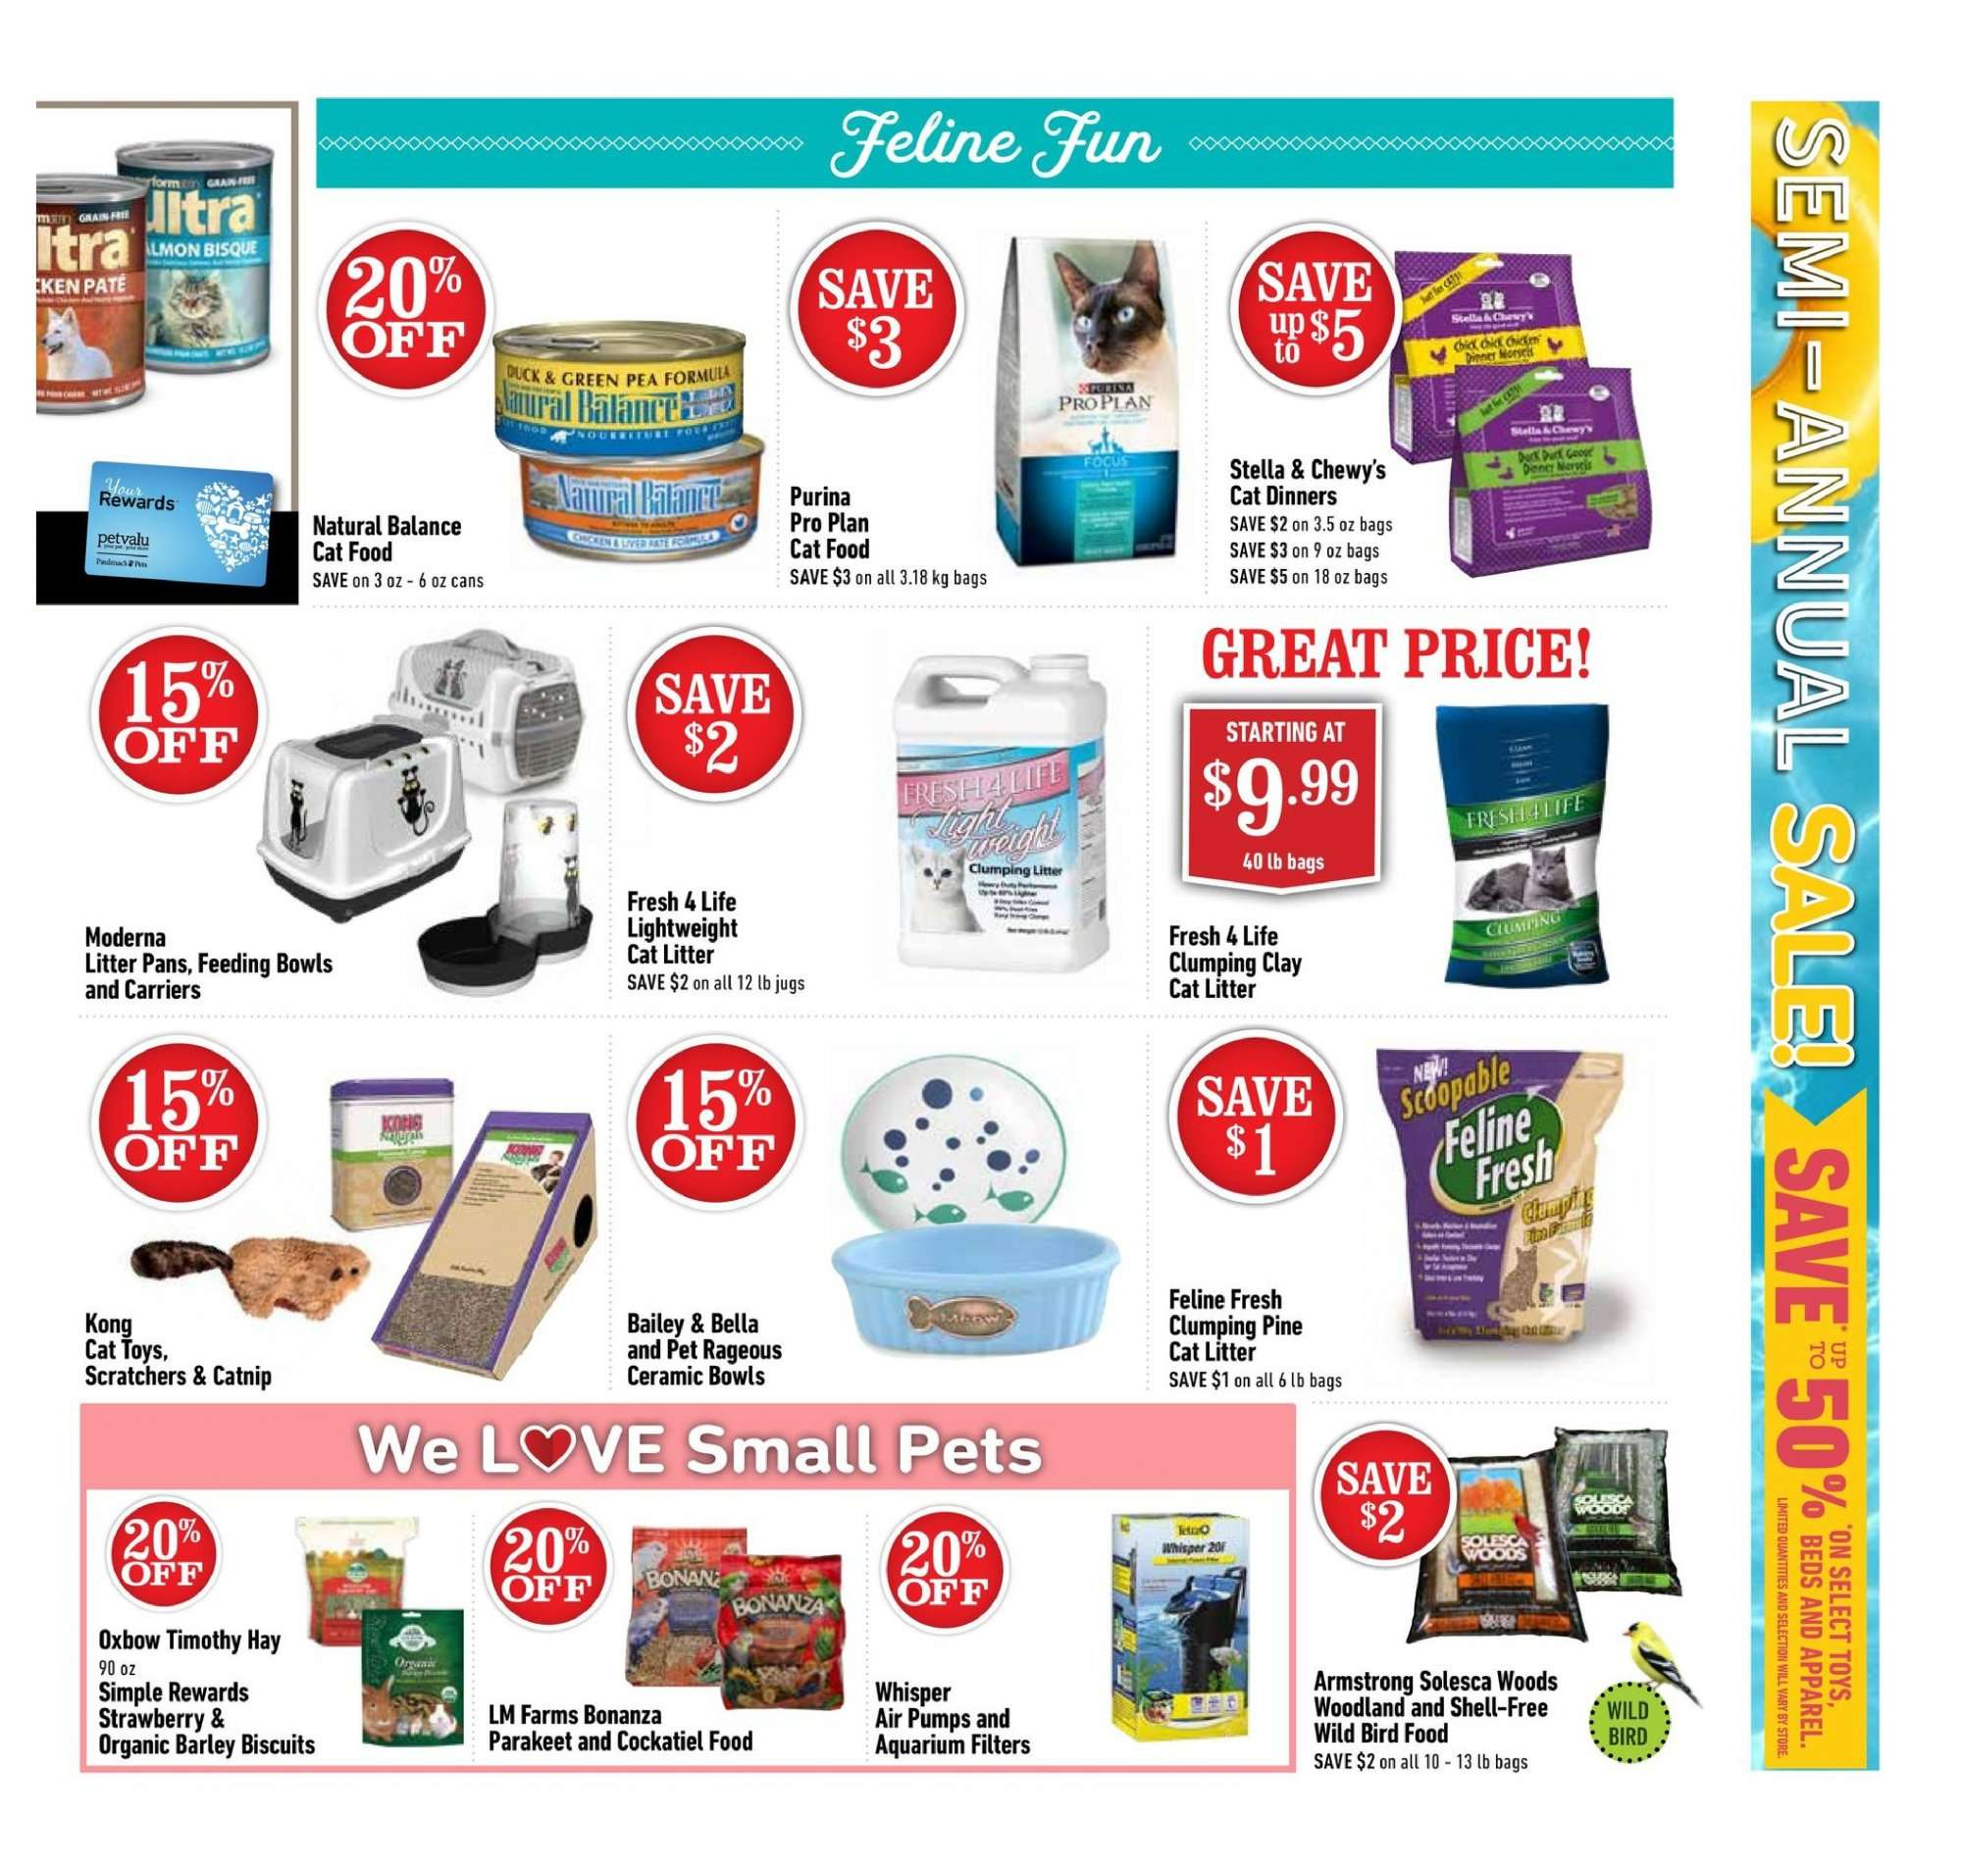 Pet Valu Flyer - August 02, 2018 - August 12, 2018 - Sales products - animal food, bag, barley, bella, bird food, biscuits, bowl, cat food, cat litter, litter, shell, pet, pine, pro plan, purina, organic, strawberry, aquarium, biscuit, pets, pâtes. Page 3.